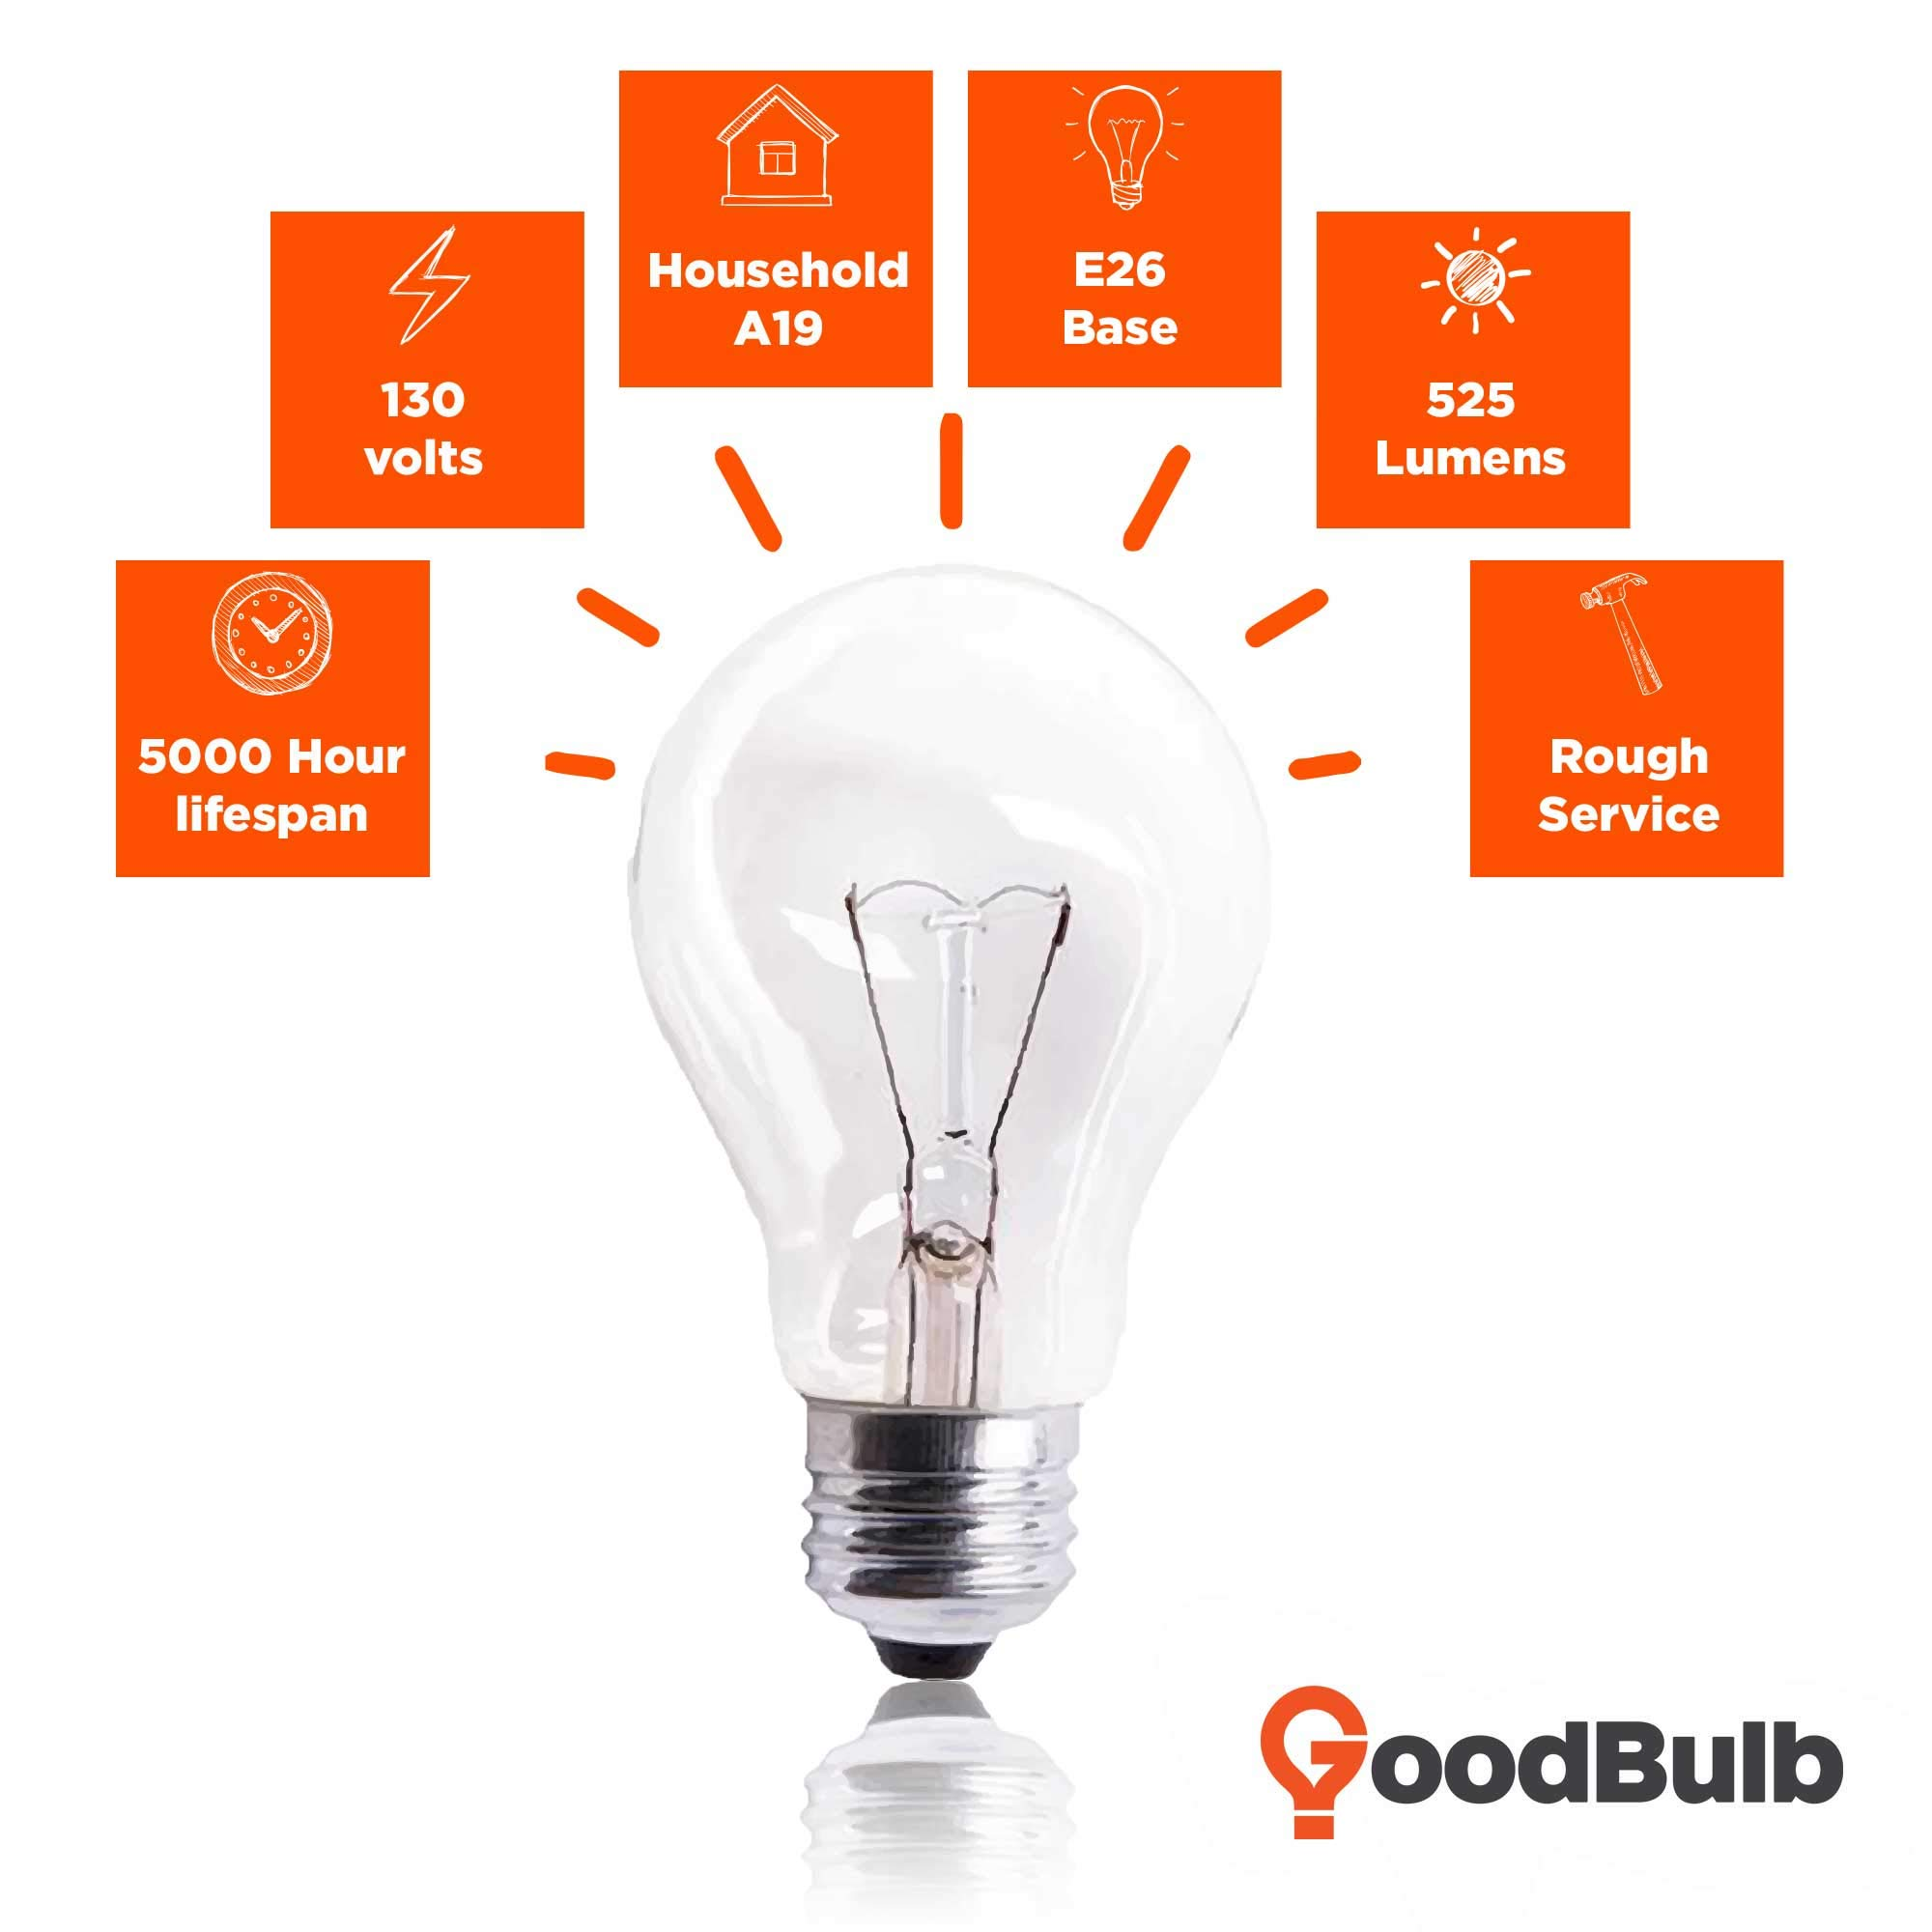 GoodBulb 60 Watt Light Bulbs, Dimmable A19 Bulb with E26 Base, Rough Service Bulb, Clear Energy-Efficient Incandescent Bulbs, 525 Lumens, 130 Volts, for Various Light Fixtures (24 Pack) by GoodBulb (Image #1)